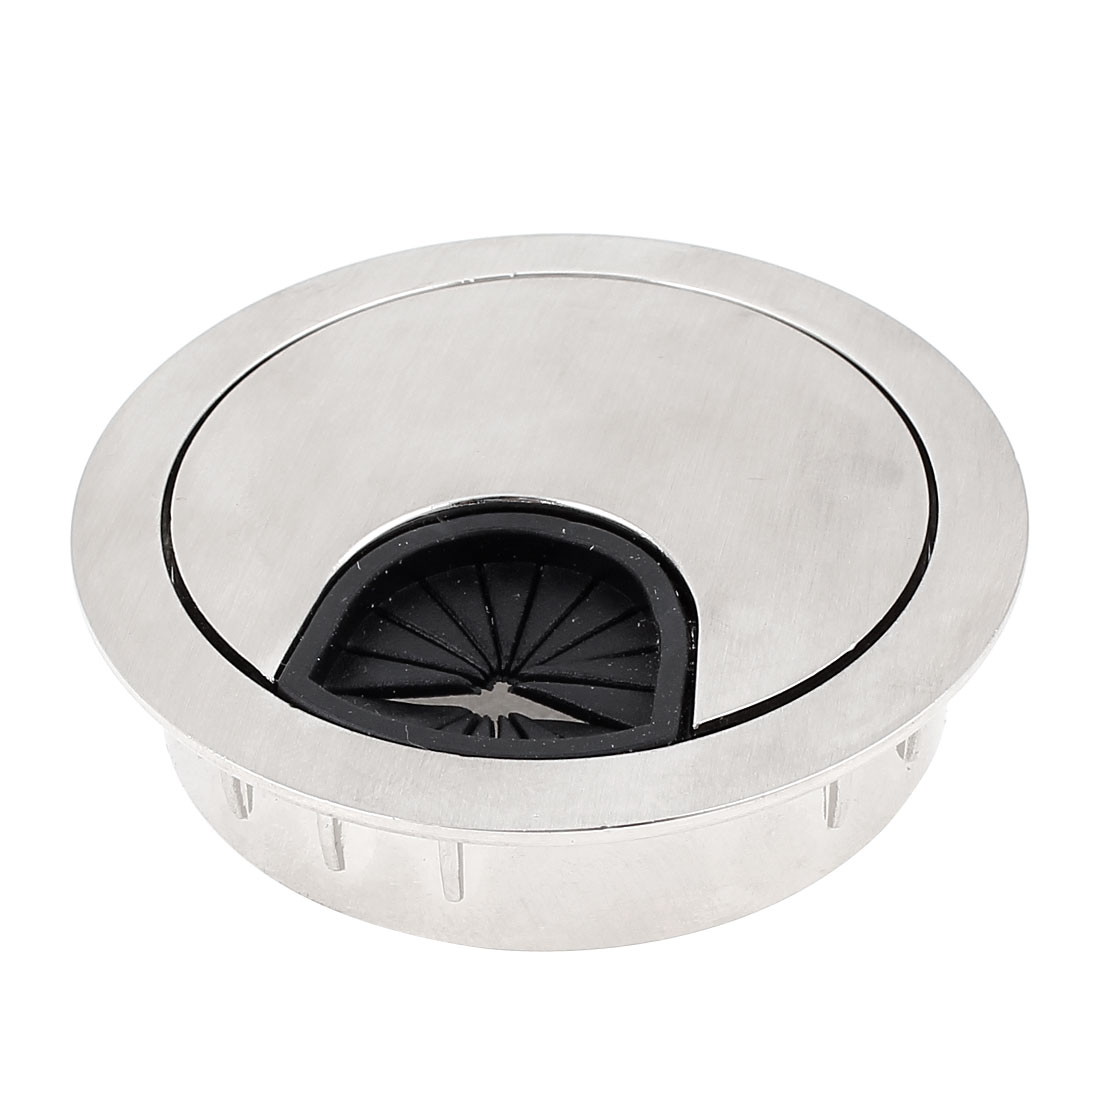 Matel Silver Tone Round Computer Desk Grommet Wire Cable Hole Cover 48mm